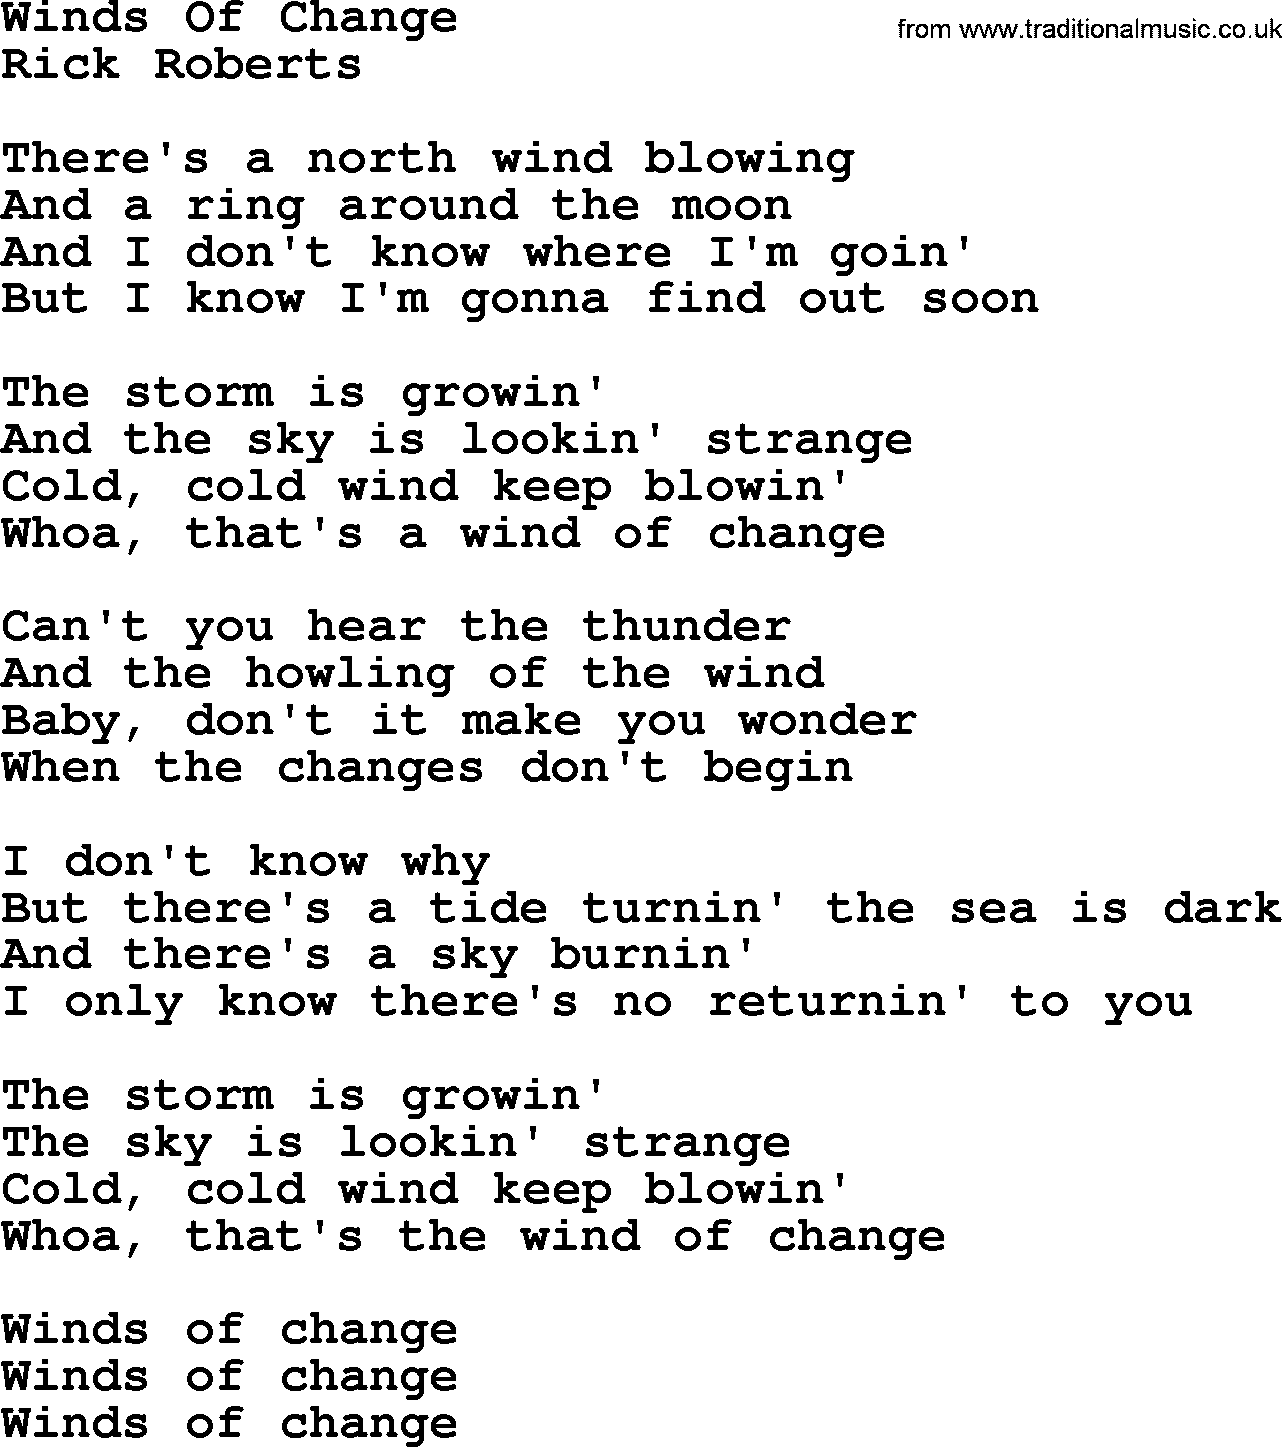 Winds Of Change, by The Byrds - lyrics with pdf